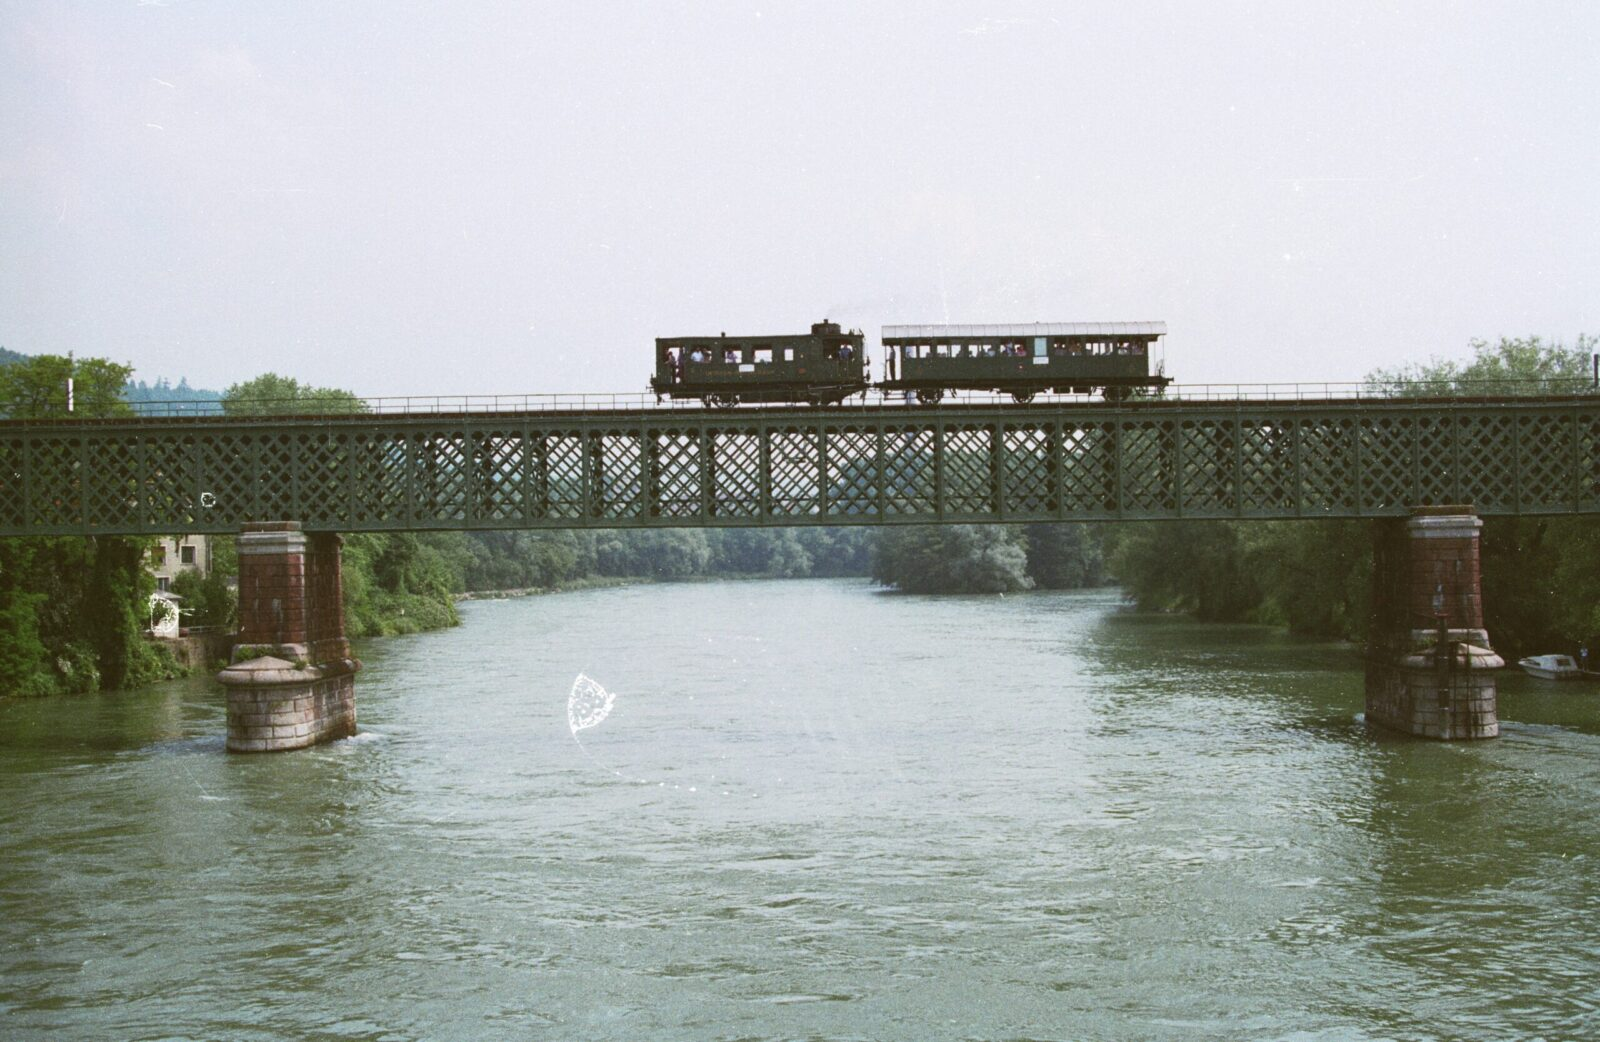 It dates back to the early days of bridge-building for the railway: this beam bridge made of truss spans the Rhine river, where it crosses the border between Waldshut and Koblenz. It was completed in 1859 and is still in its original condition today.